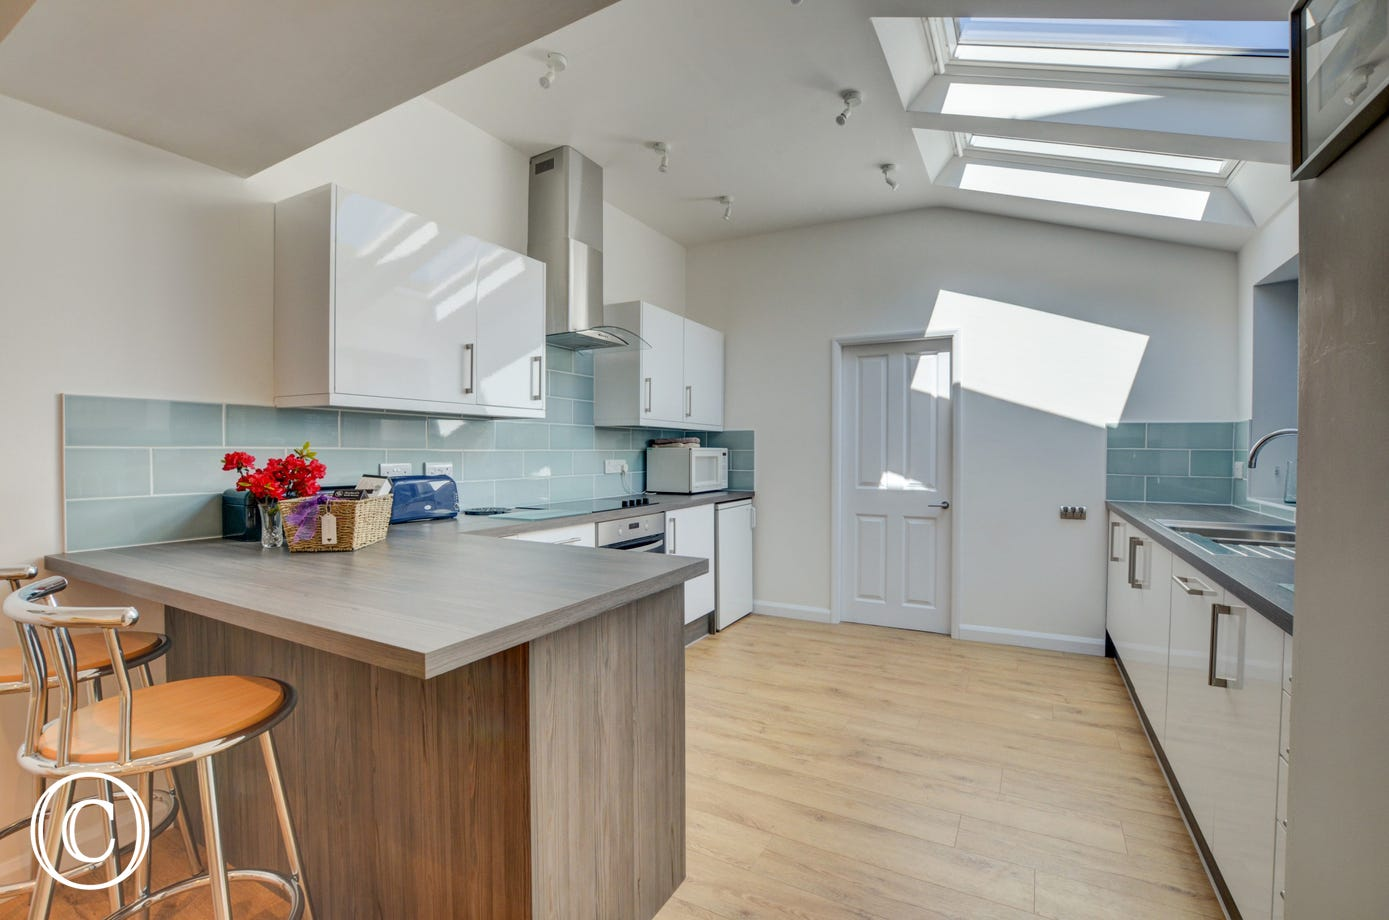 A wonderful room to cook in with modern kitchen units and skylight